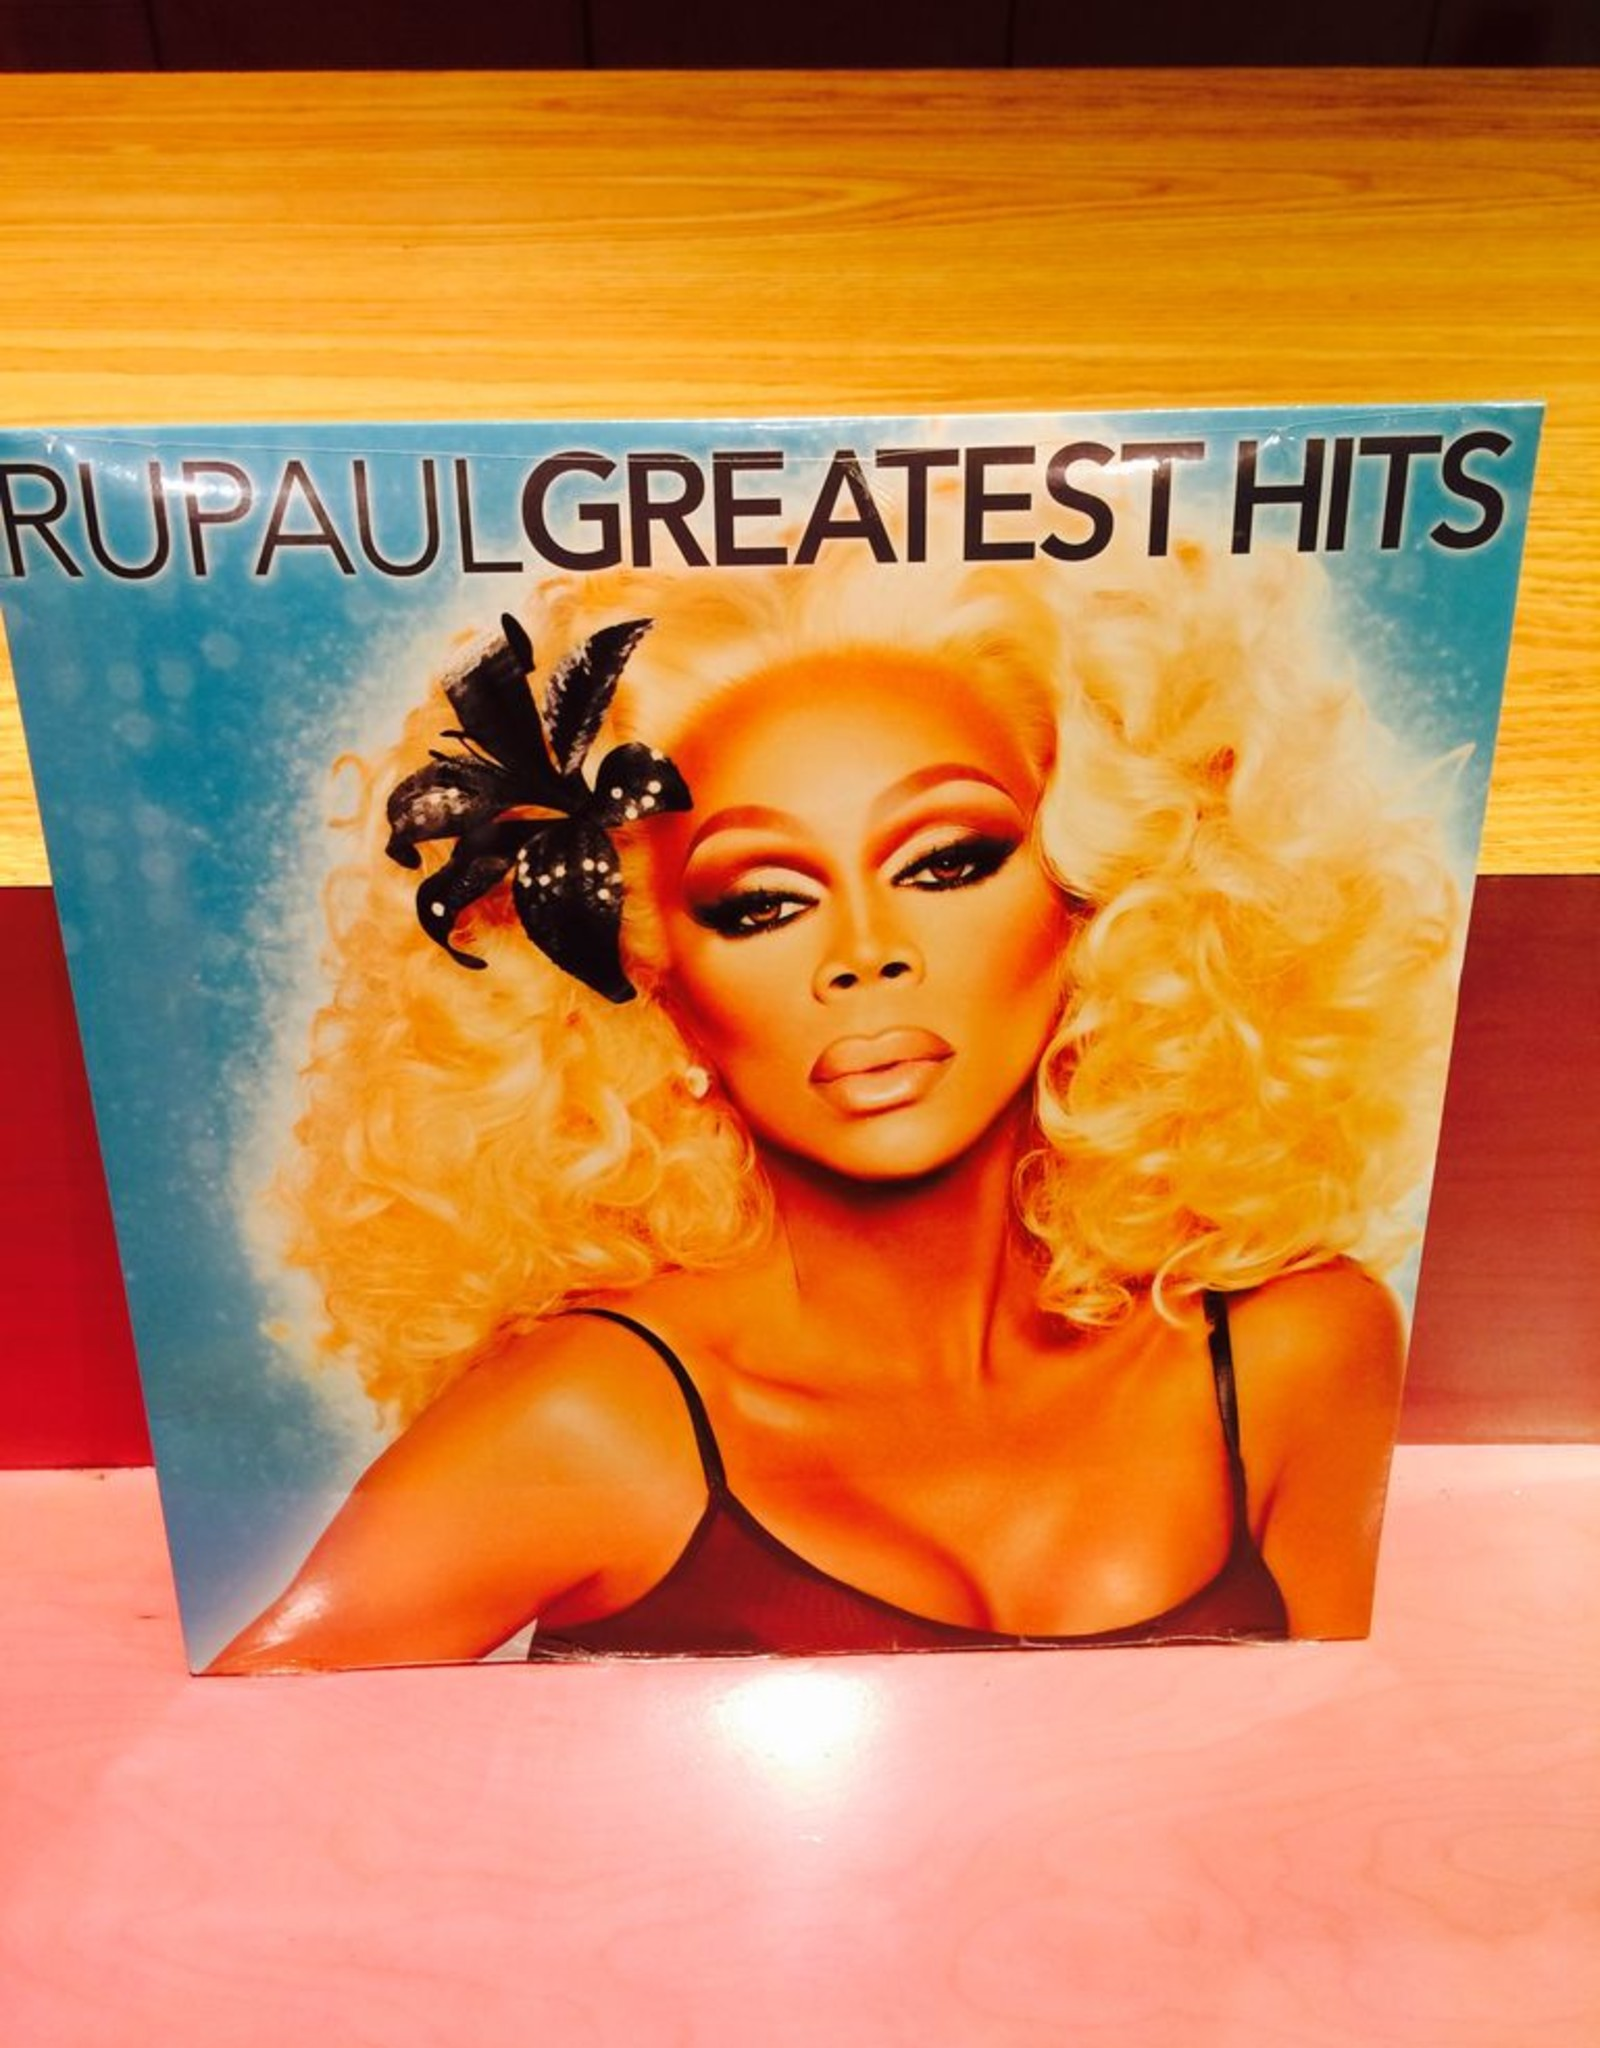 RuPaul Greatest Hits Vinyl